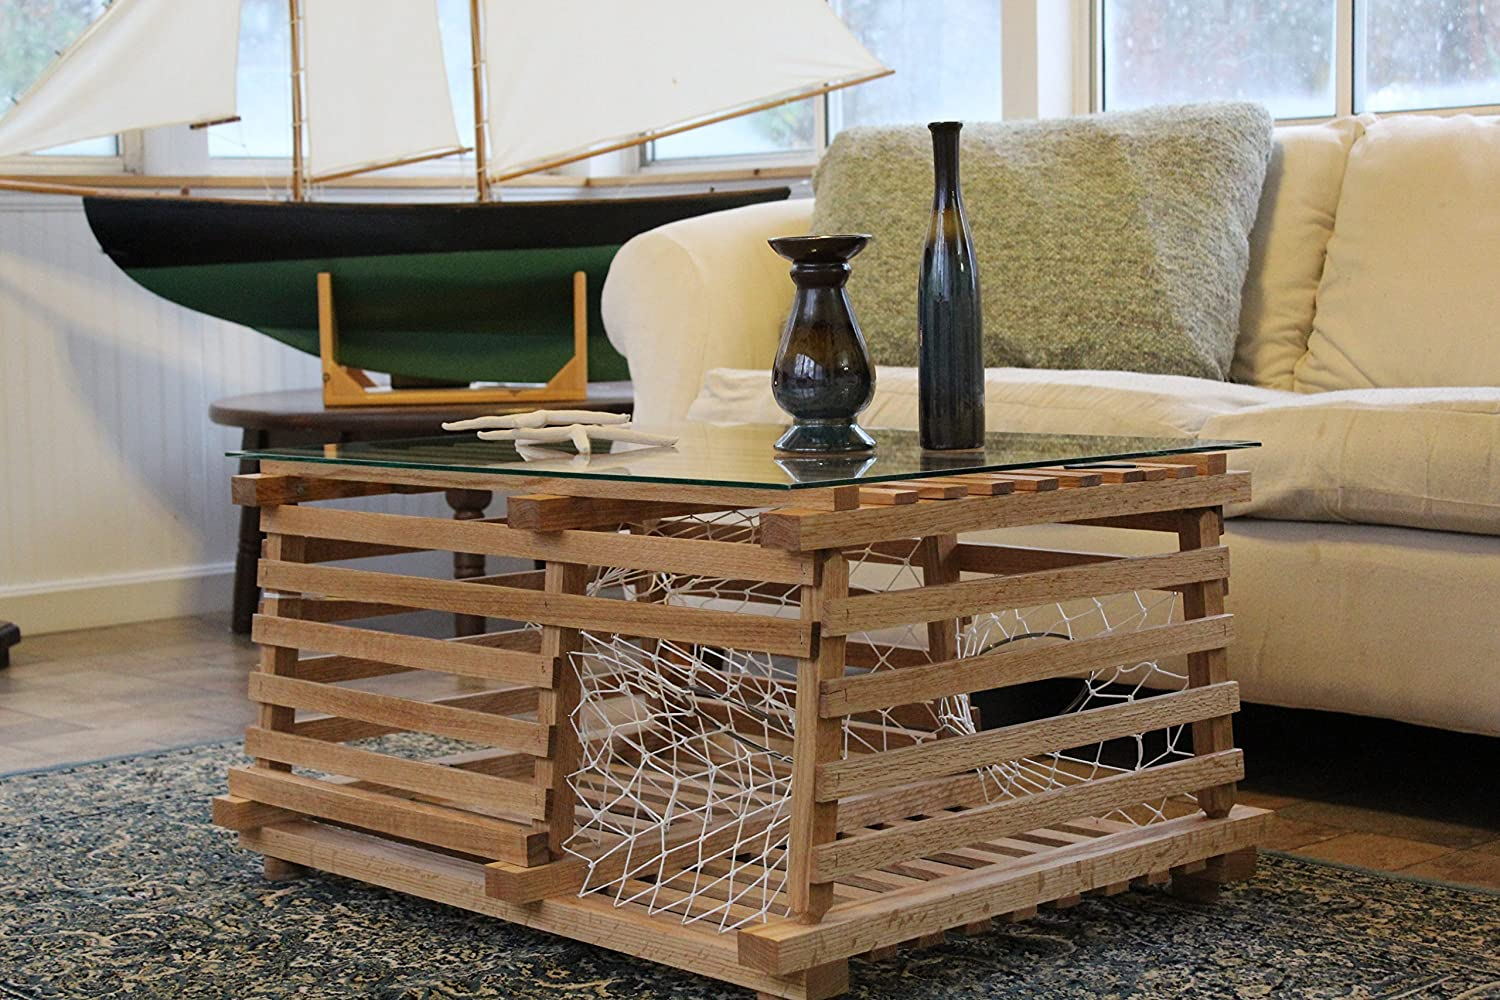 Incredible Maine Wooden Lobster Trap Coffee Table Andrewgaddart Wooden Chair Designs For Living Room Andrewgaddartcom